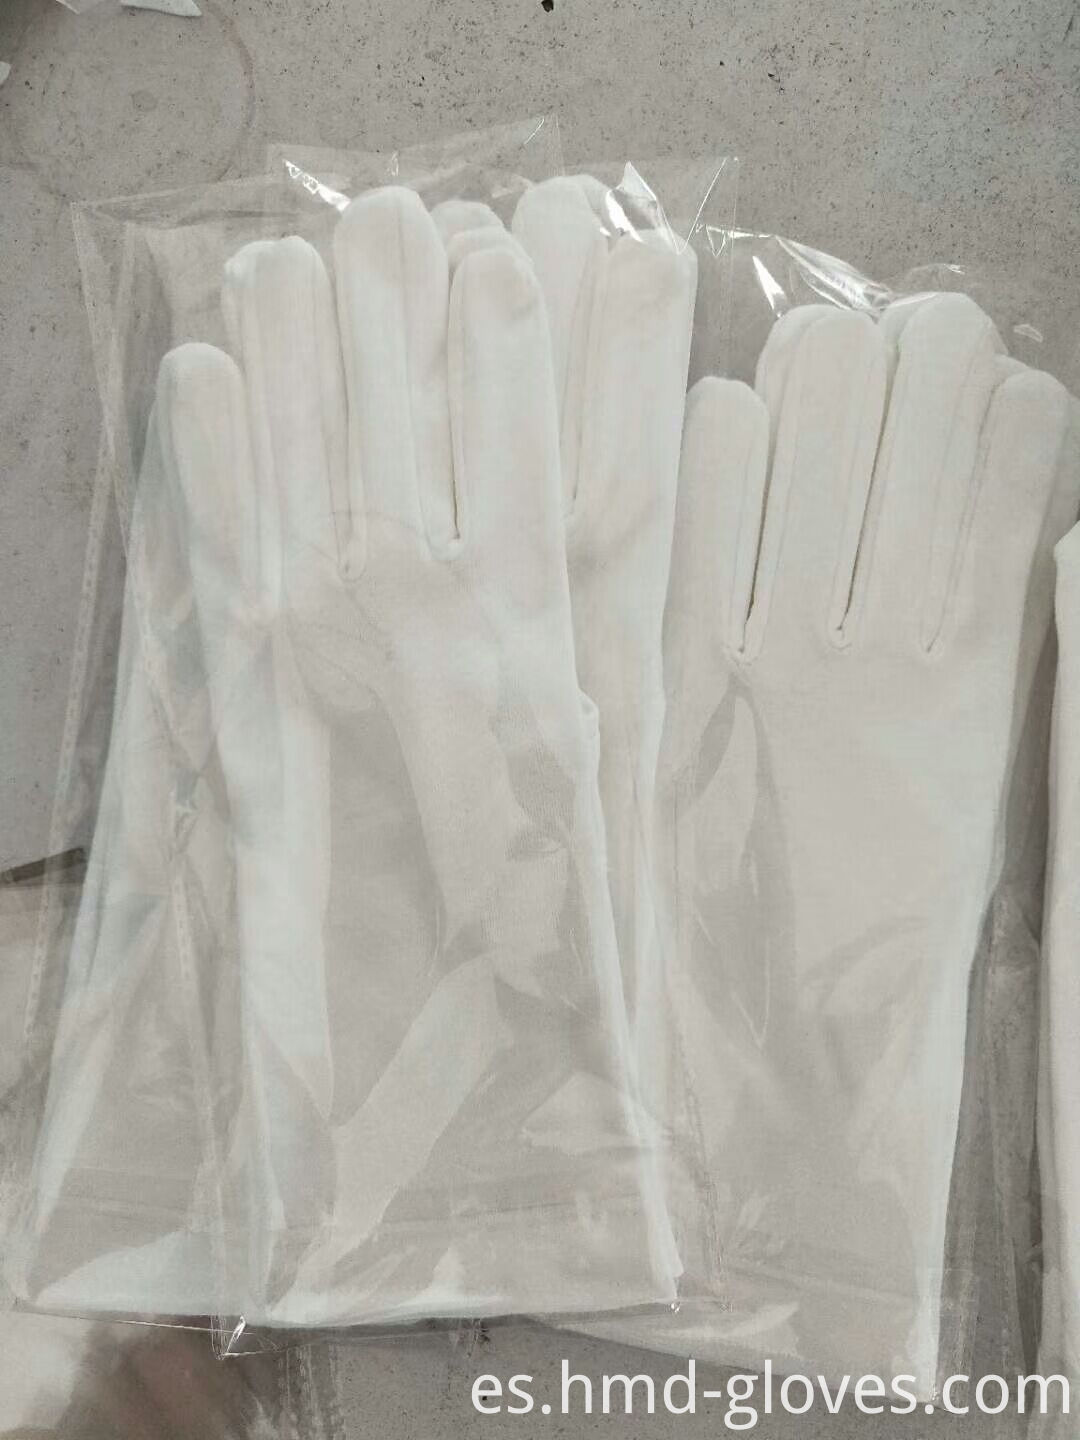 Cotton Glove Factory White